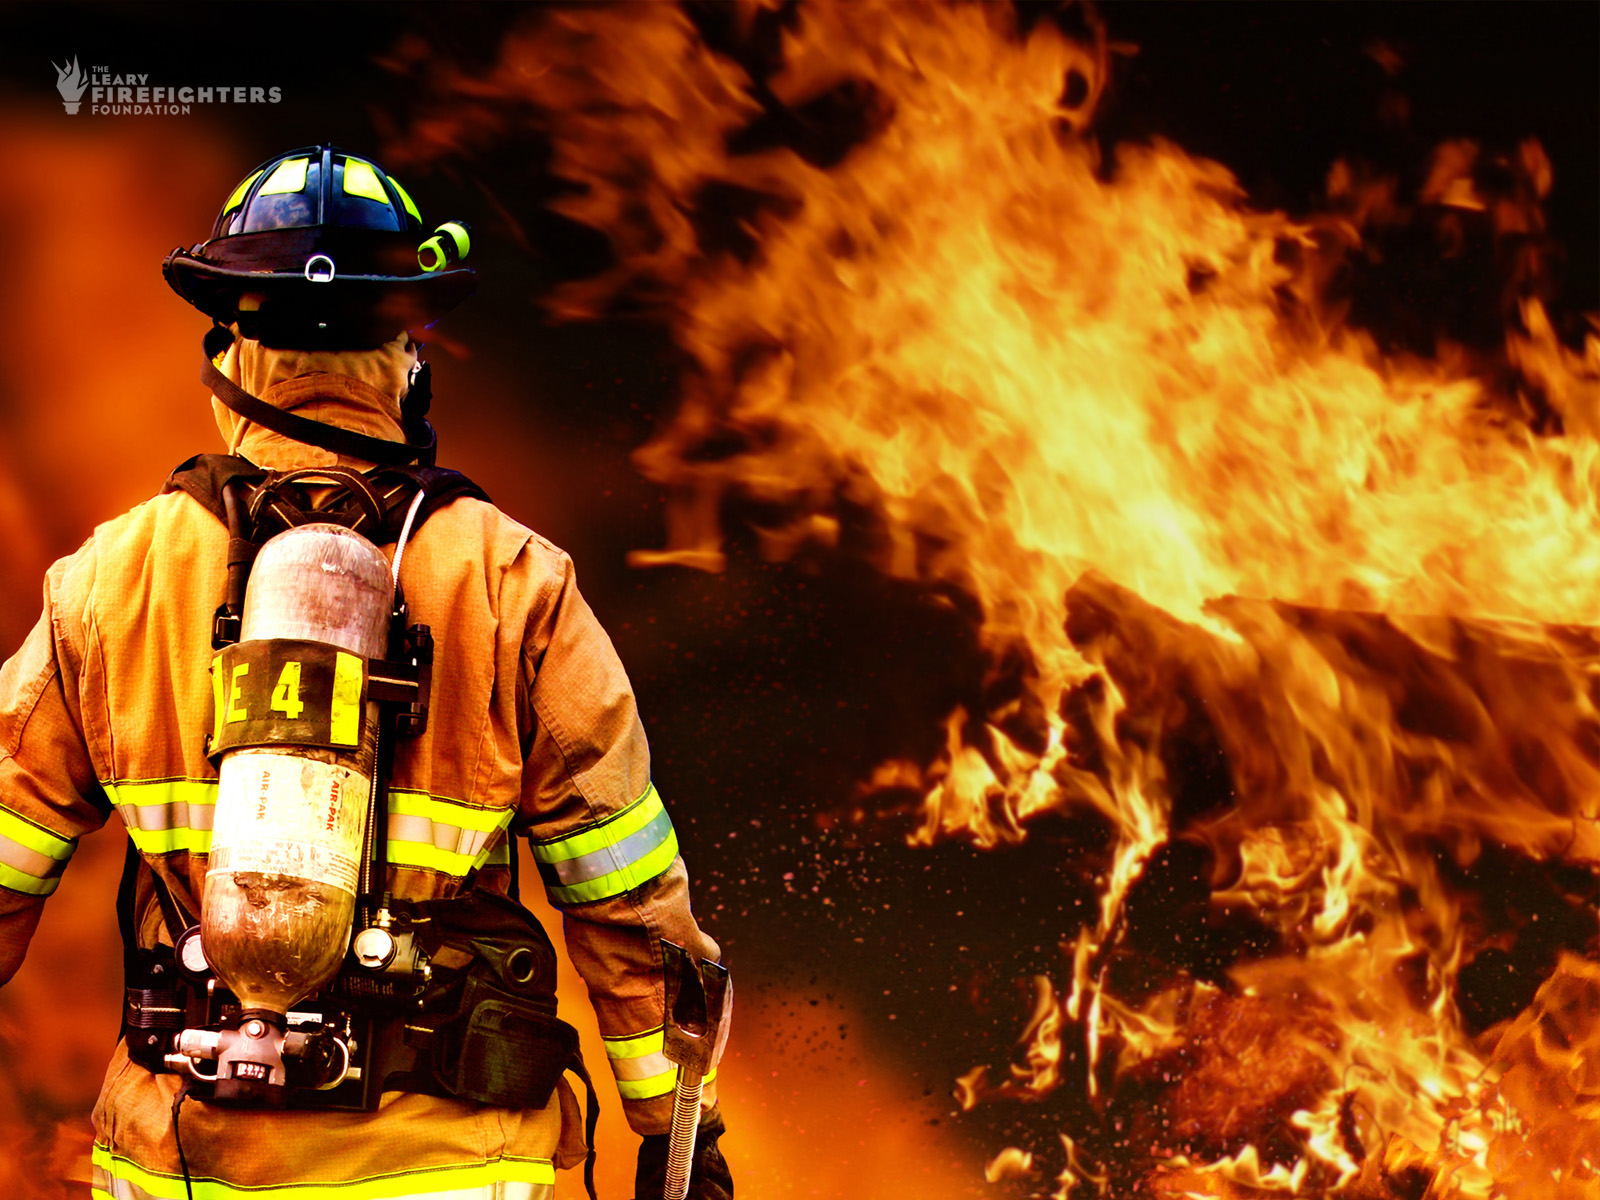 Firefighter Desktop Backgrounds 1600x1200